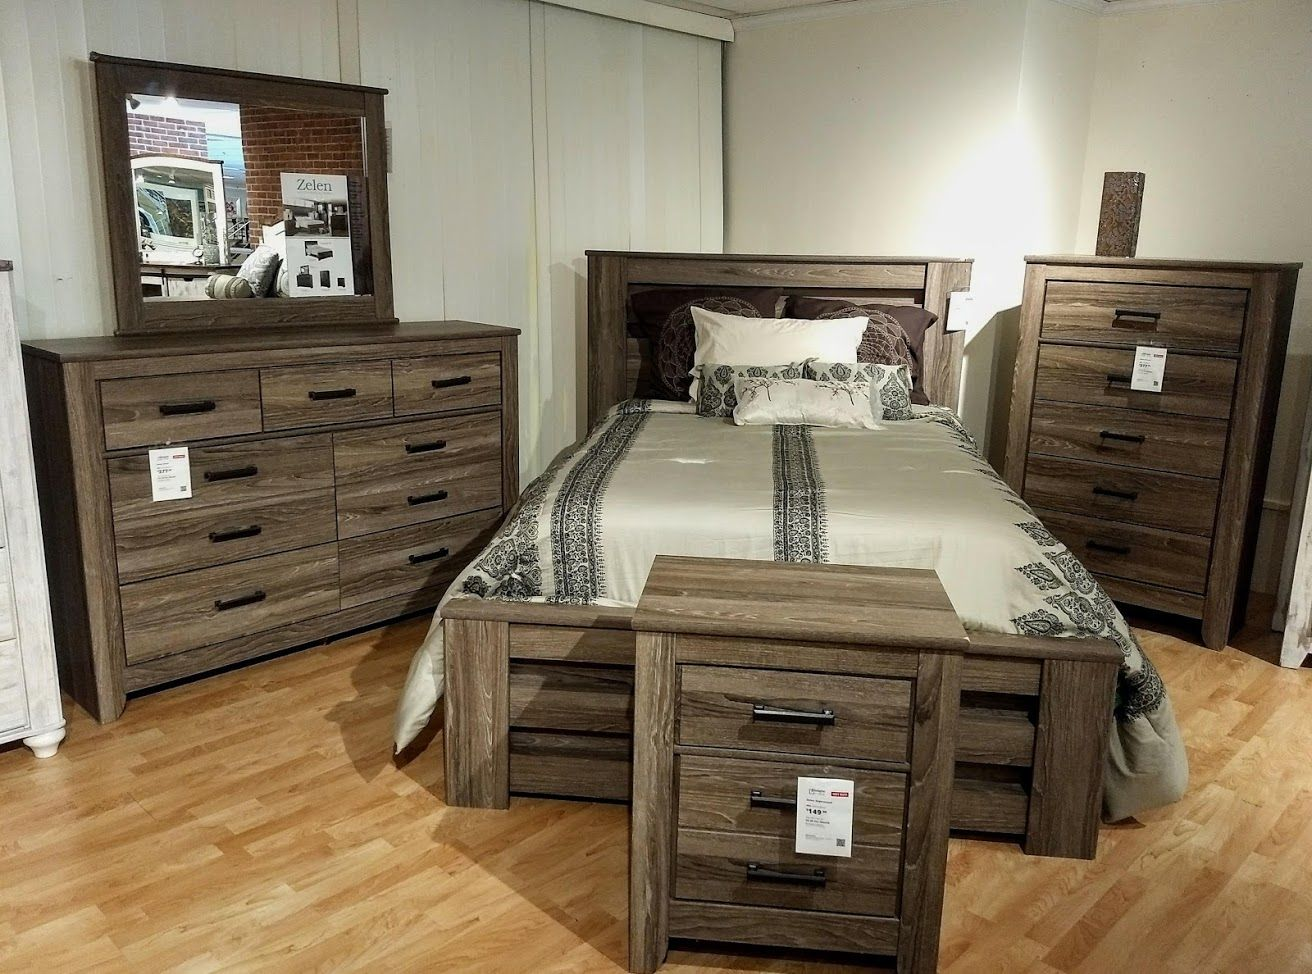 This vintage casual Zelen Bed Set embodies charm and